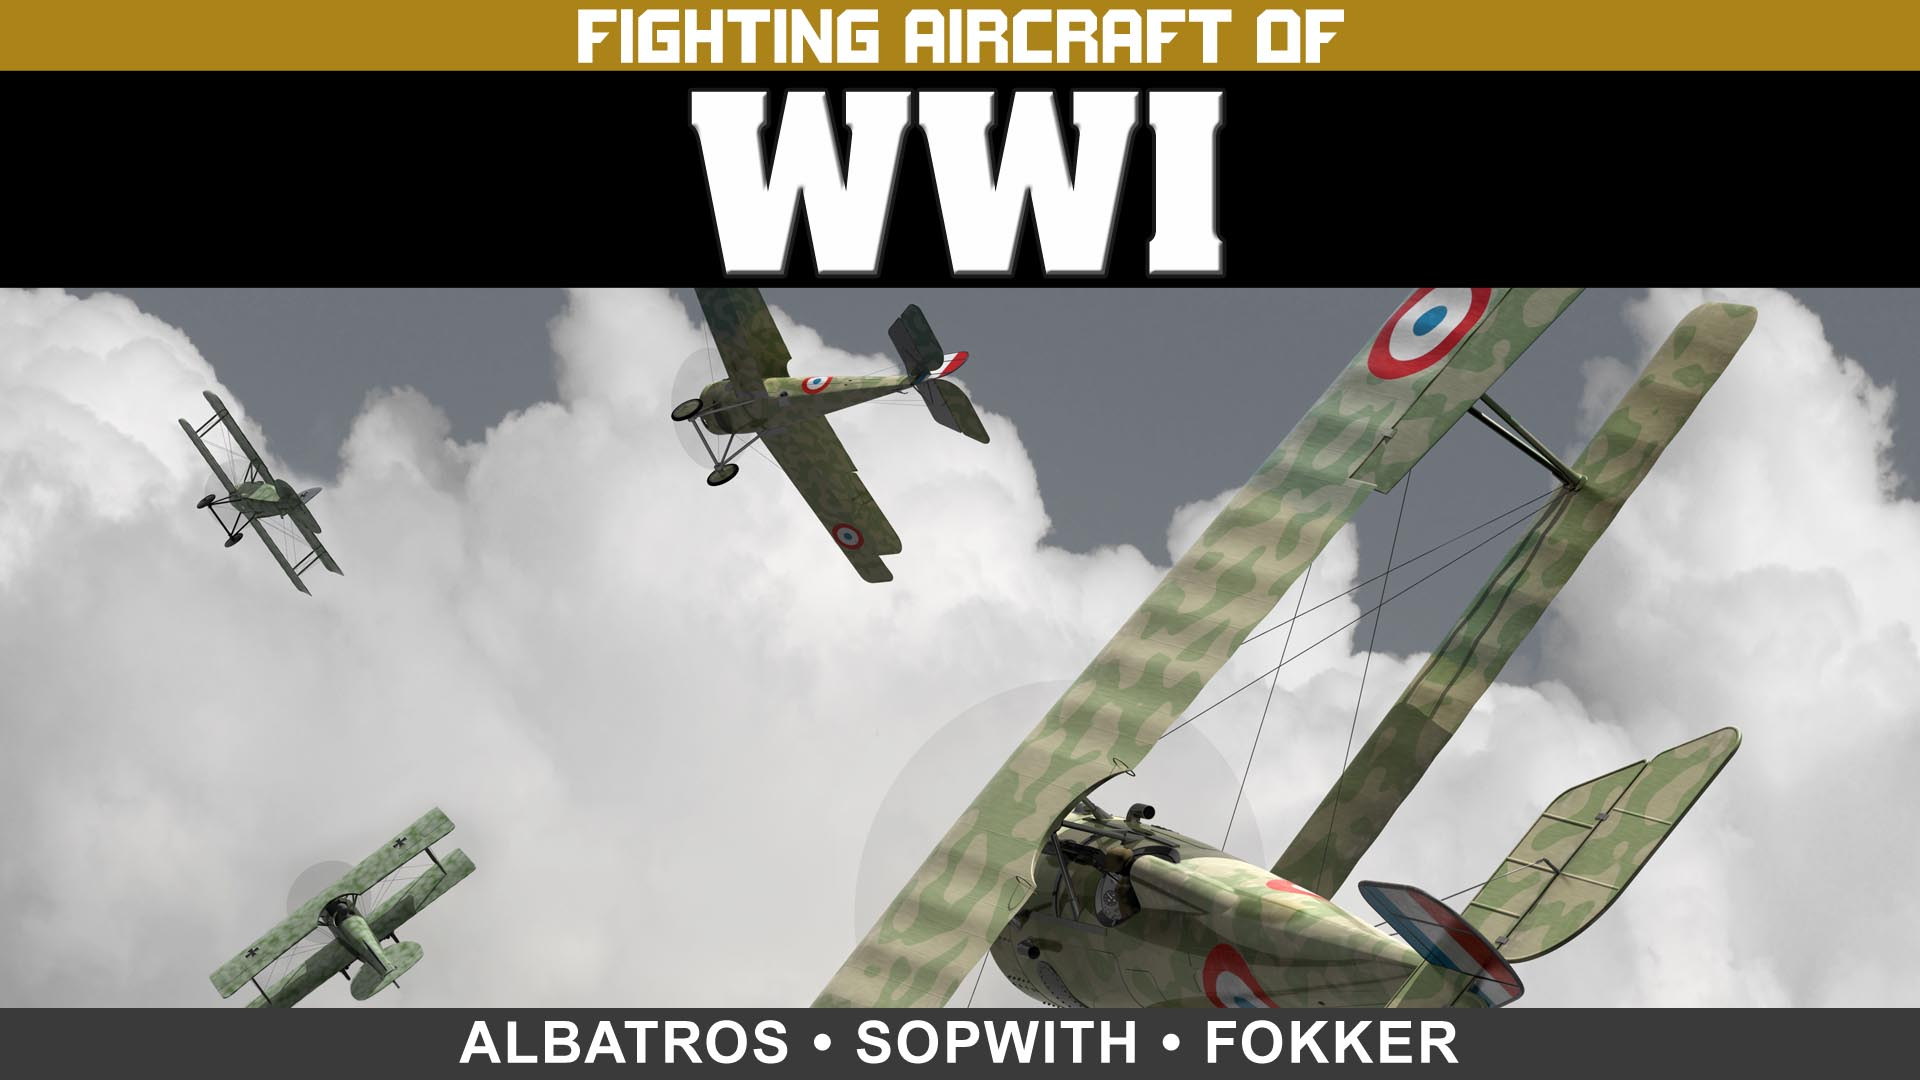 Fighting Aircraft of WWI: Albatros, Sopwith and Fokker -